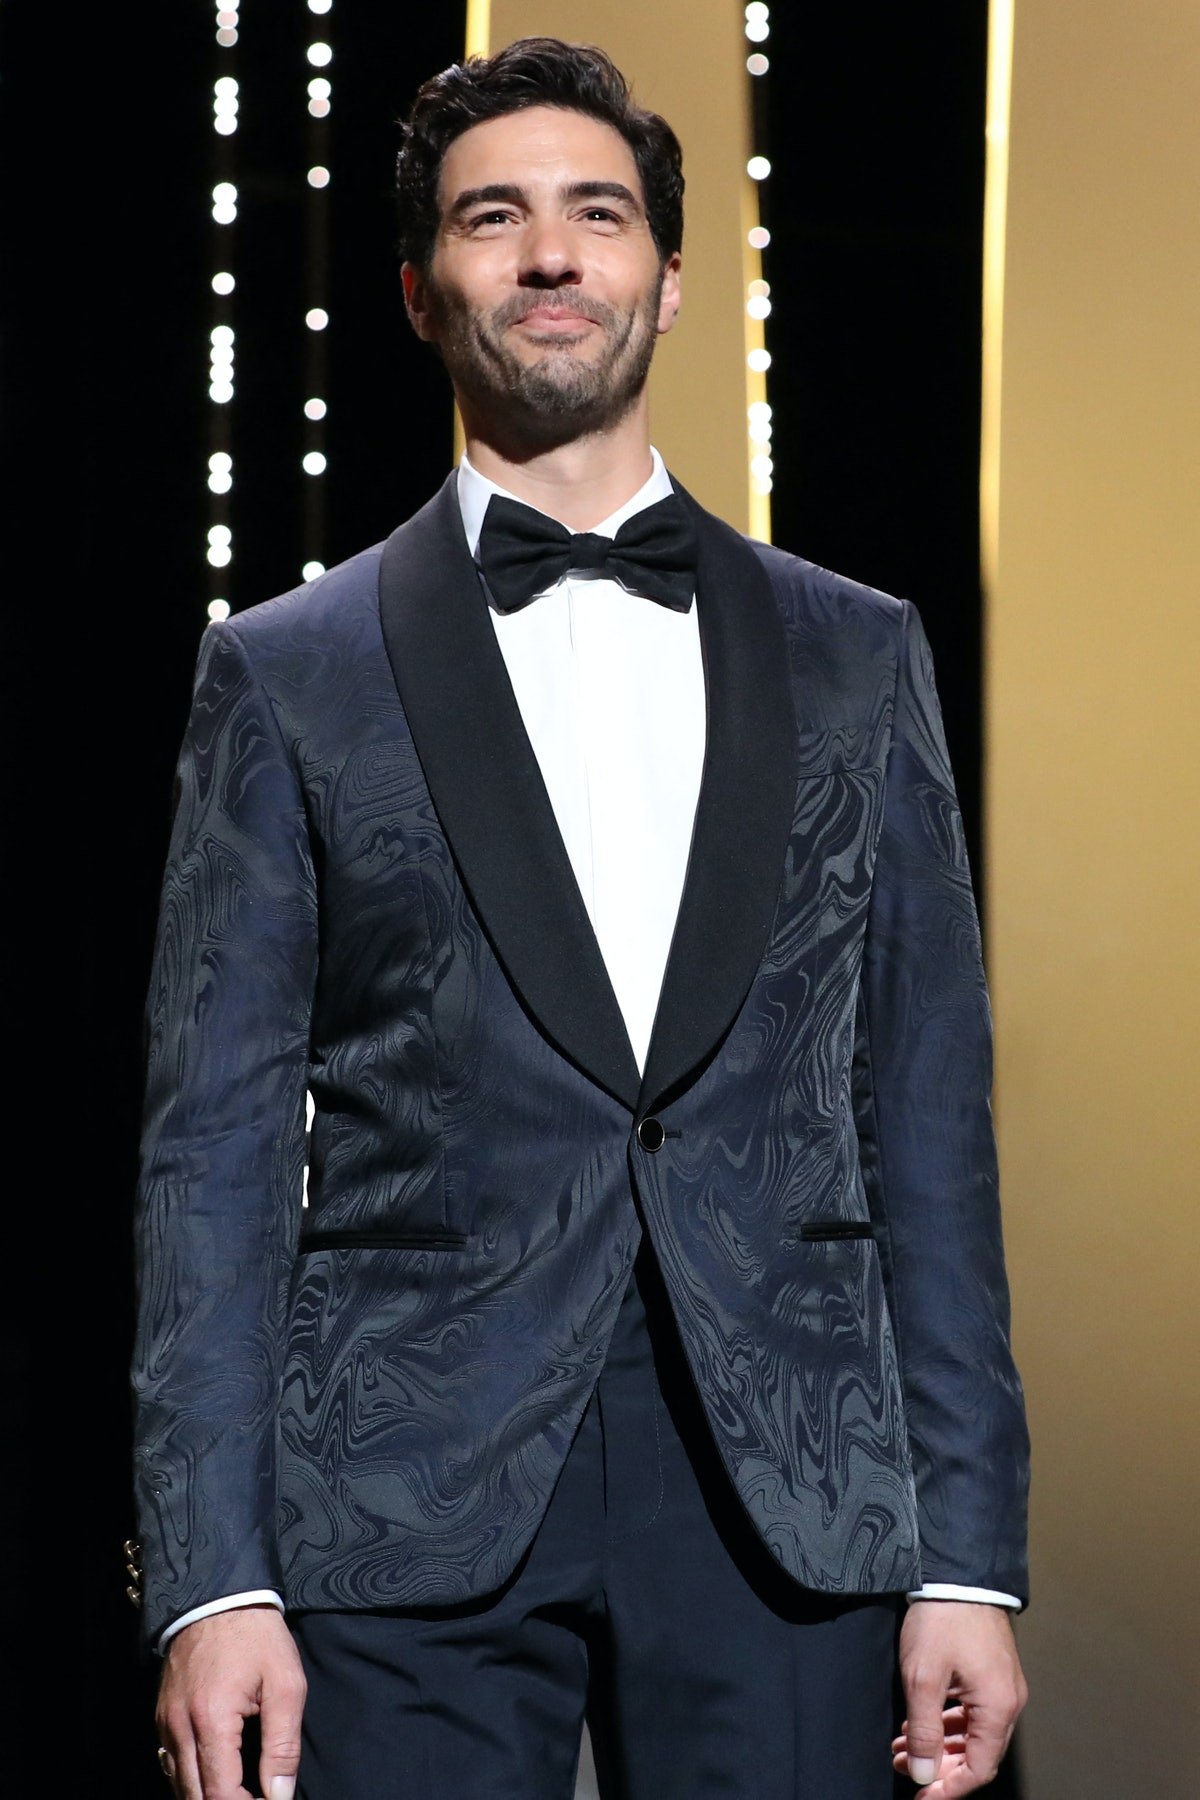 French actor and member of the Jury of the Official Selection Tahar Rahim smiles as he arrives on stage during the opening ceremony of the 74th edition of the Cannes Film Festival in Cannes, southern France, on July 6, 2021. (Photo by Valery HACHE / AFP) (Photo by VALERY HACHE/AFP via Getty Images)